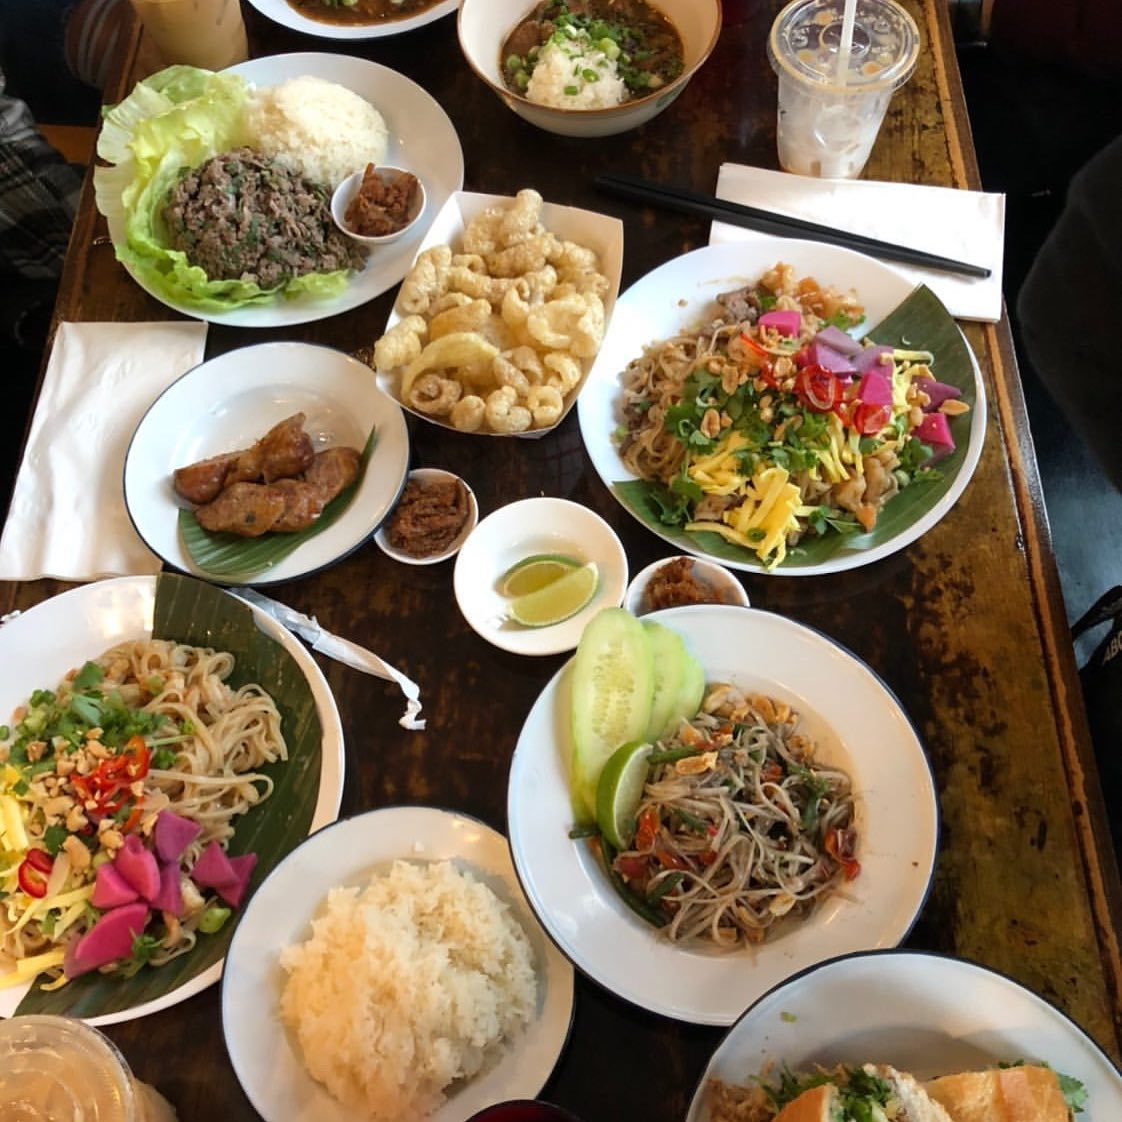 A collection of Laotian dishes at the new restaurant, Taurus Ox.